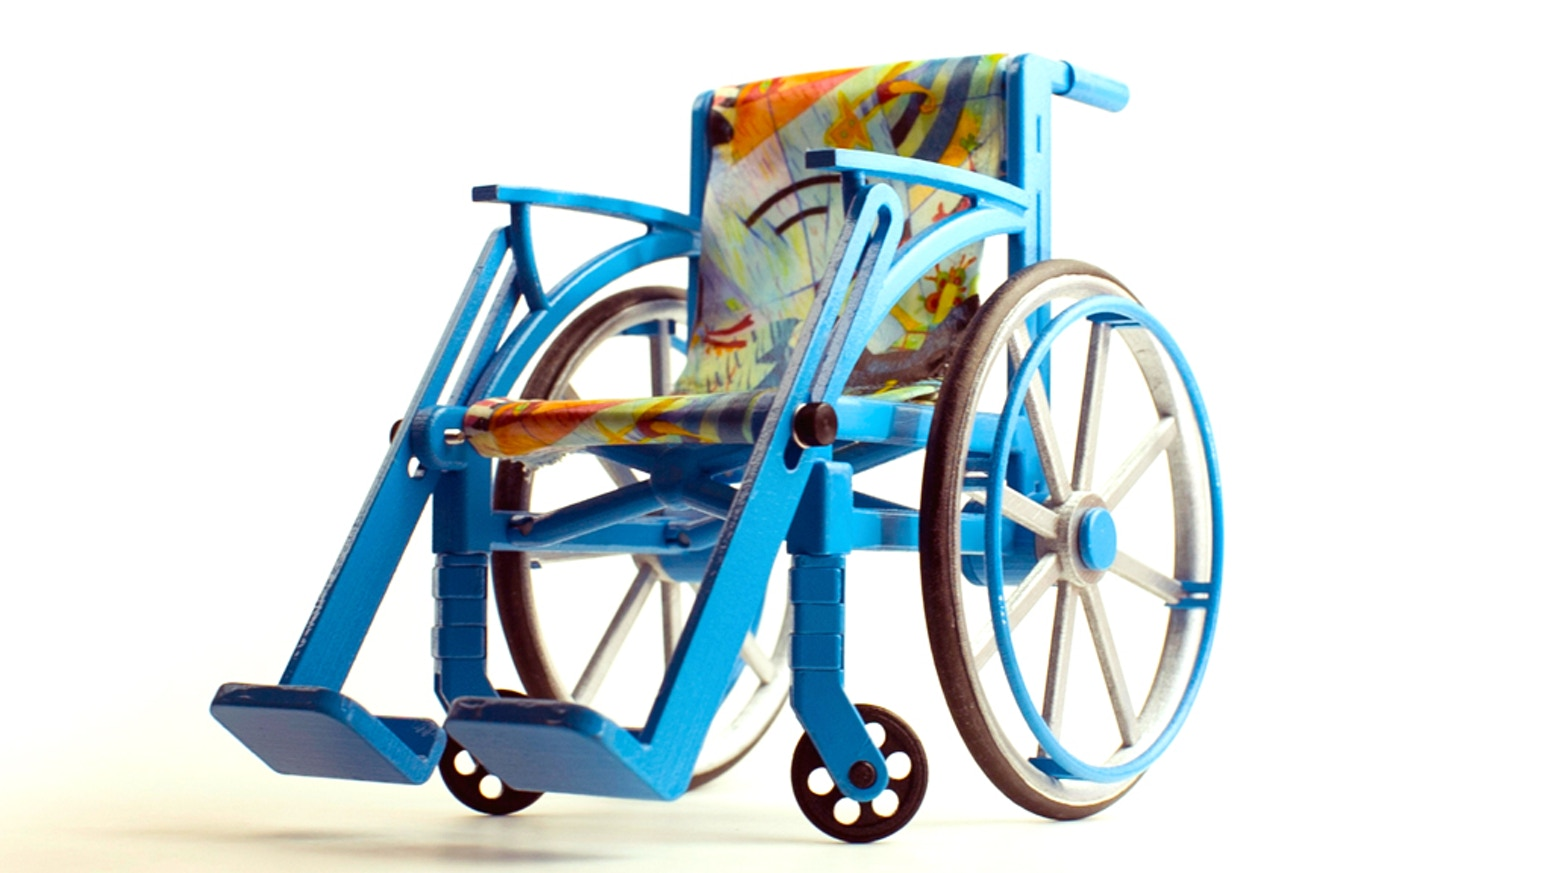 Wheelchairs for fashion dolls (Barbie sized dolls) were discontinued in 1997. Let's bring the wheelchair back to life!